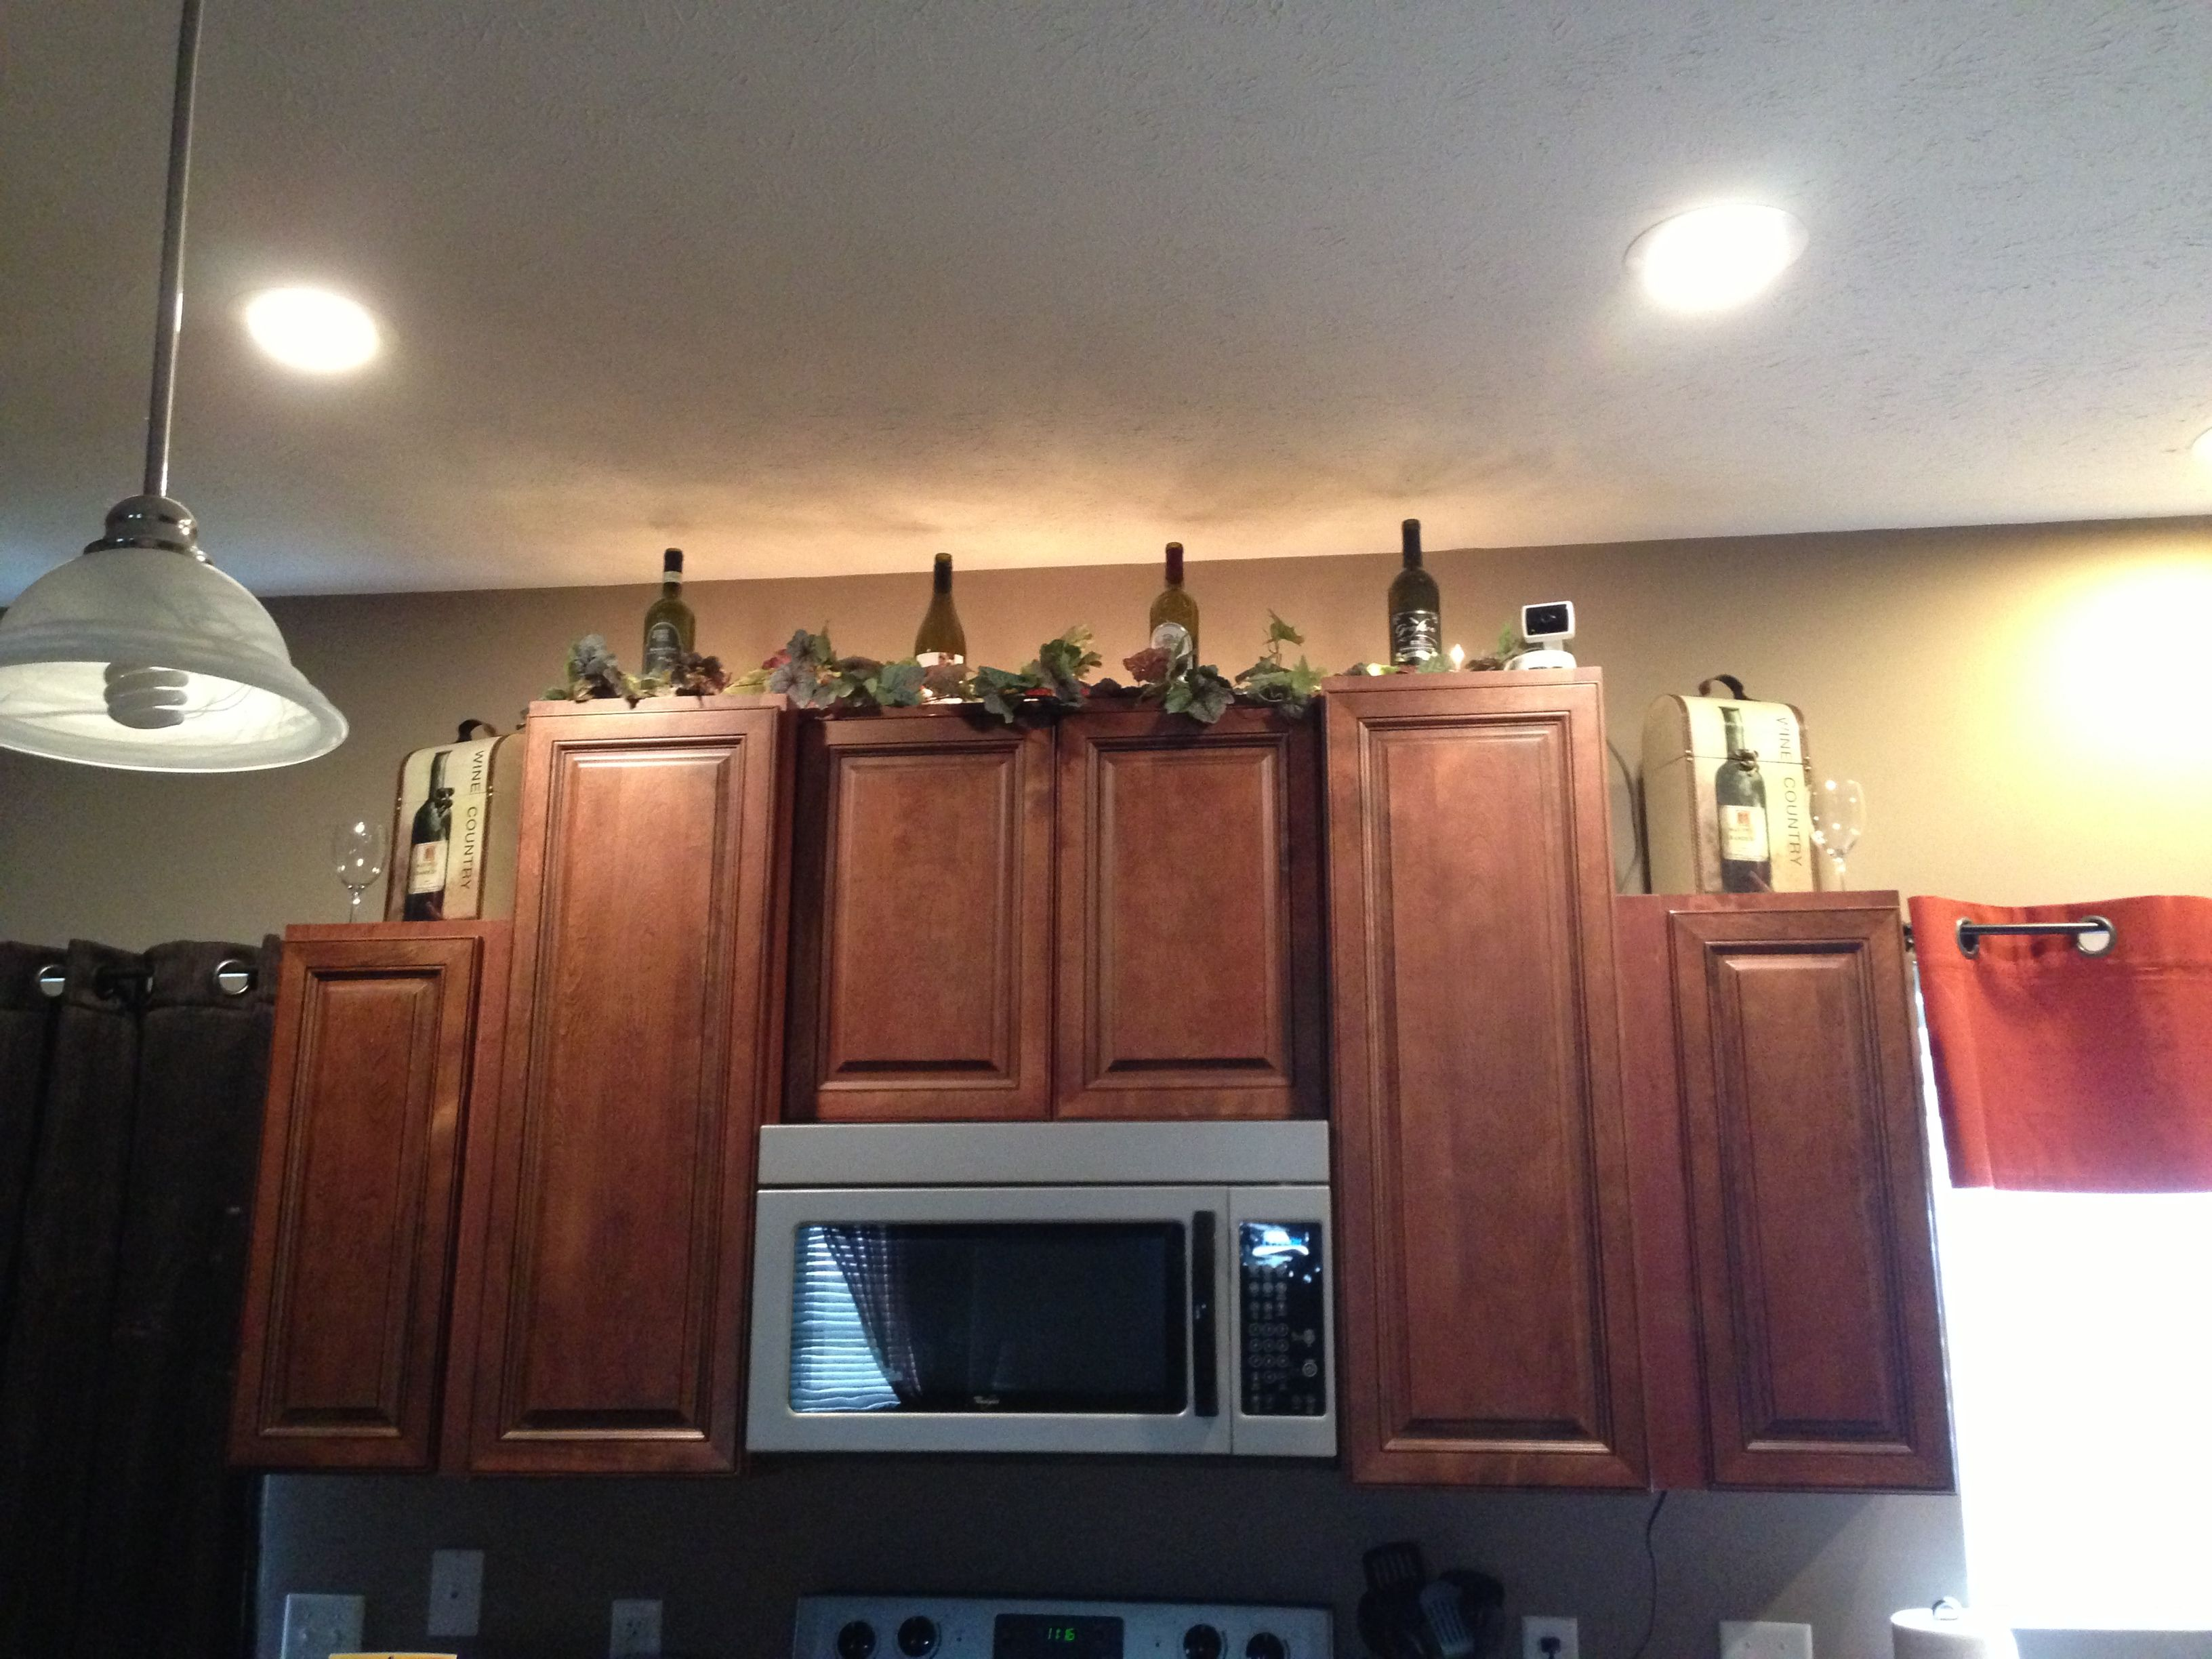 exceptional Wine Bottle Decorations For Kitchen #1: wine decor for kitchen | ... Decorating Your Kitchen With A Wine Bottle  Theme | Classica Decor Blog | For the Home | Pinterest | Kitchen colors, ...